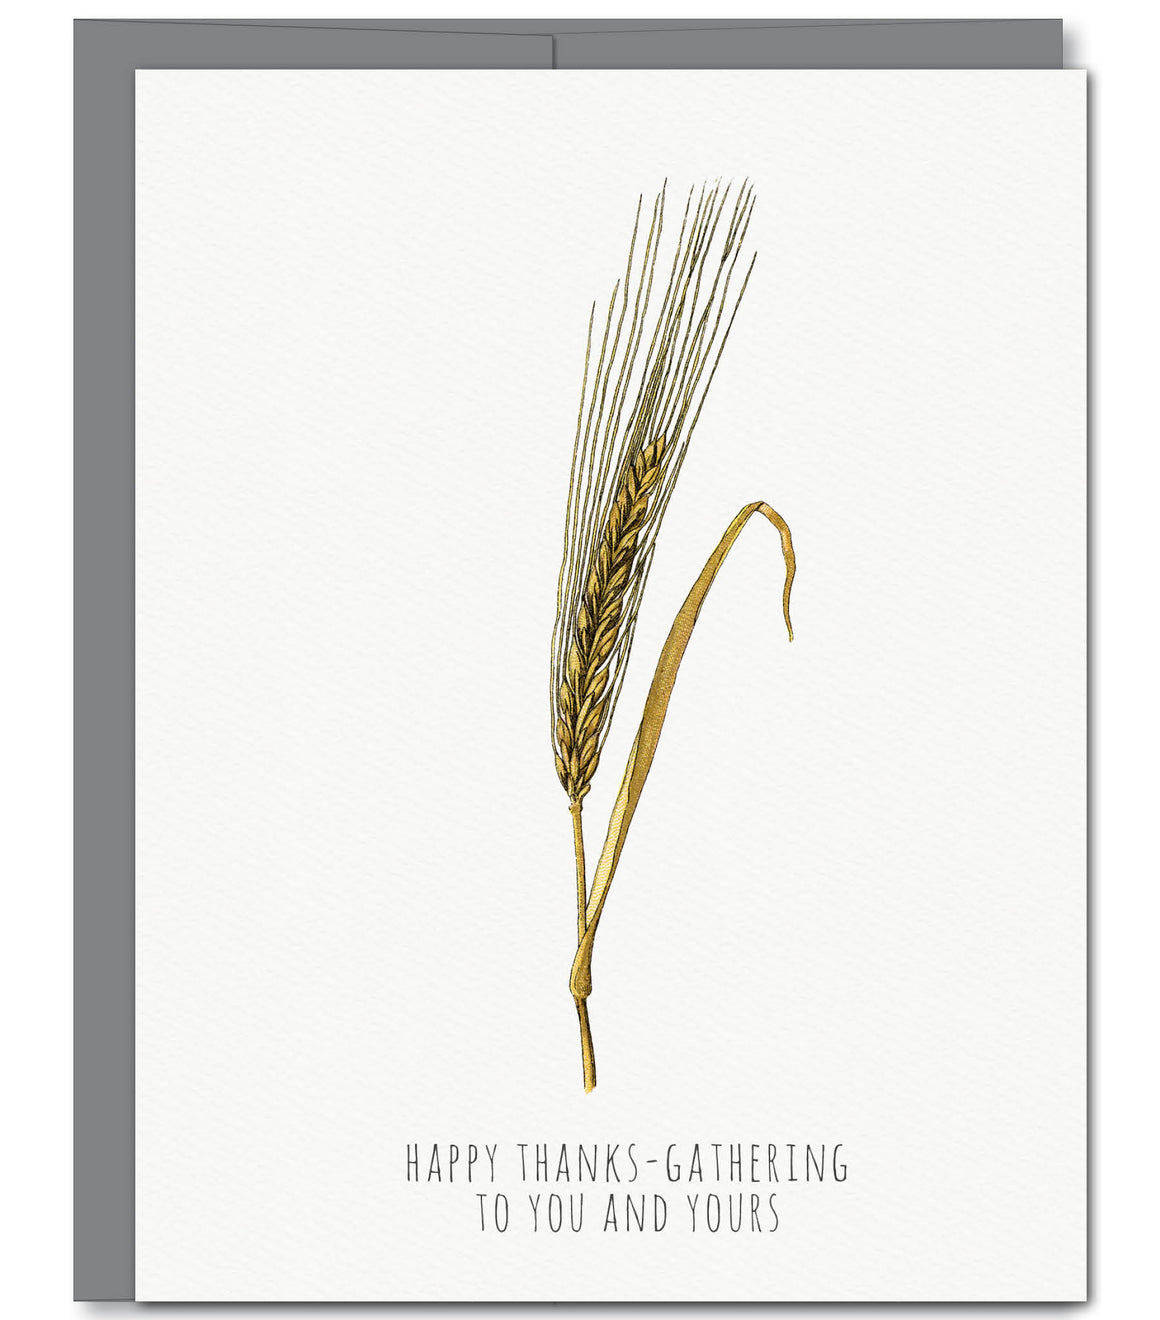 Wheat Thanksgiving Glitter Greeting Card | Sylvan Gate Design